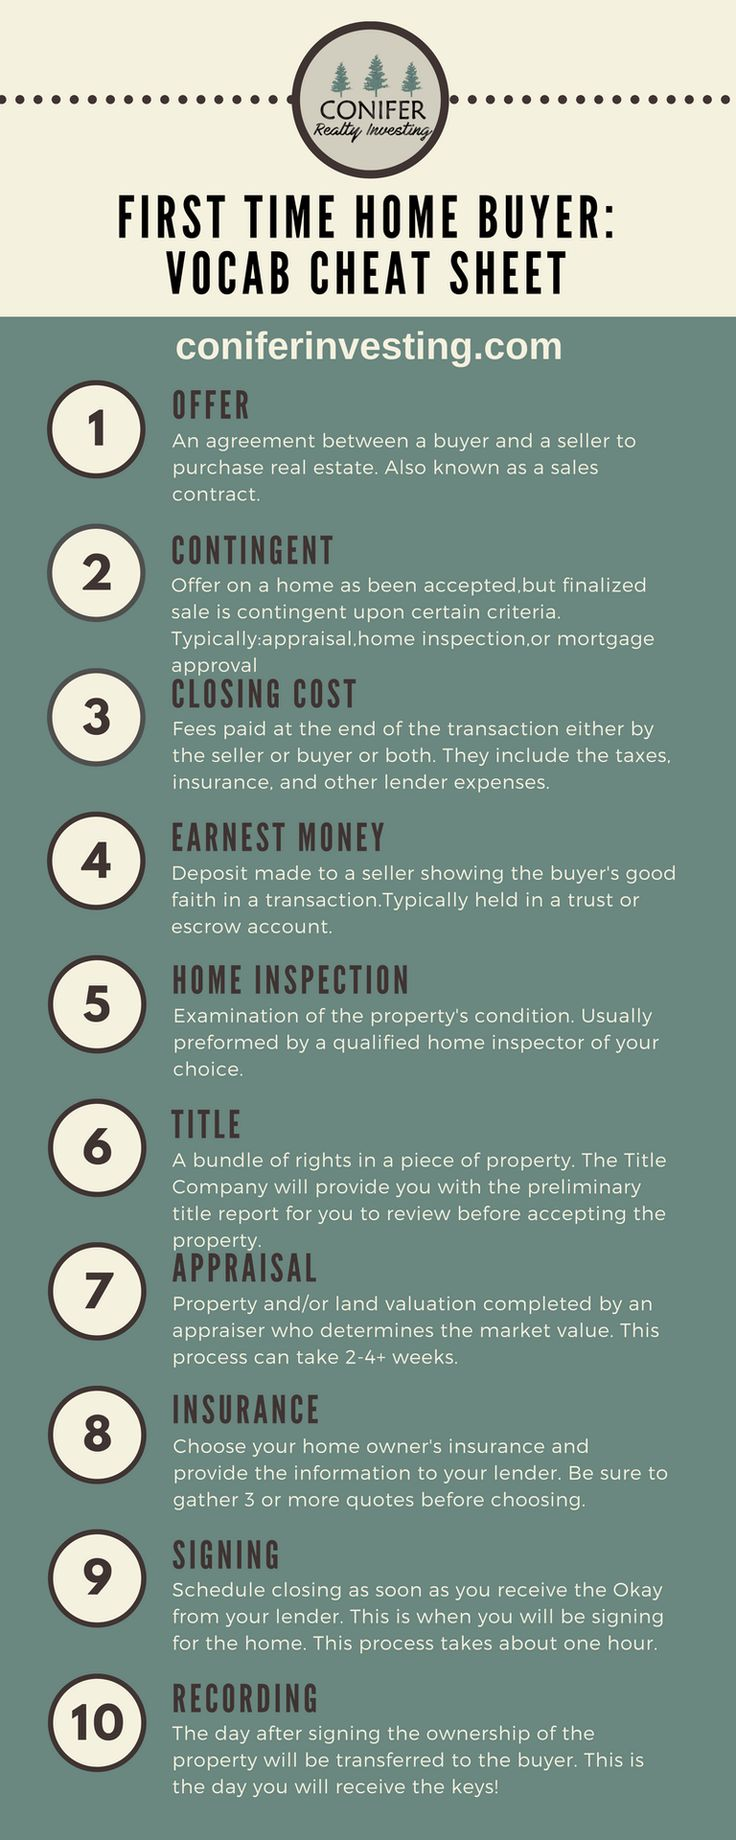 Best 25 calculator words ideas on pinterest tim hortons bagel 10 vocab words all home buyers should know receive a free mortgage calculator and home gamestrikefo Choice Image